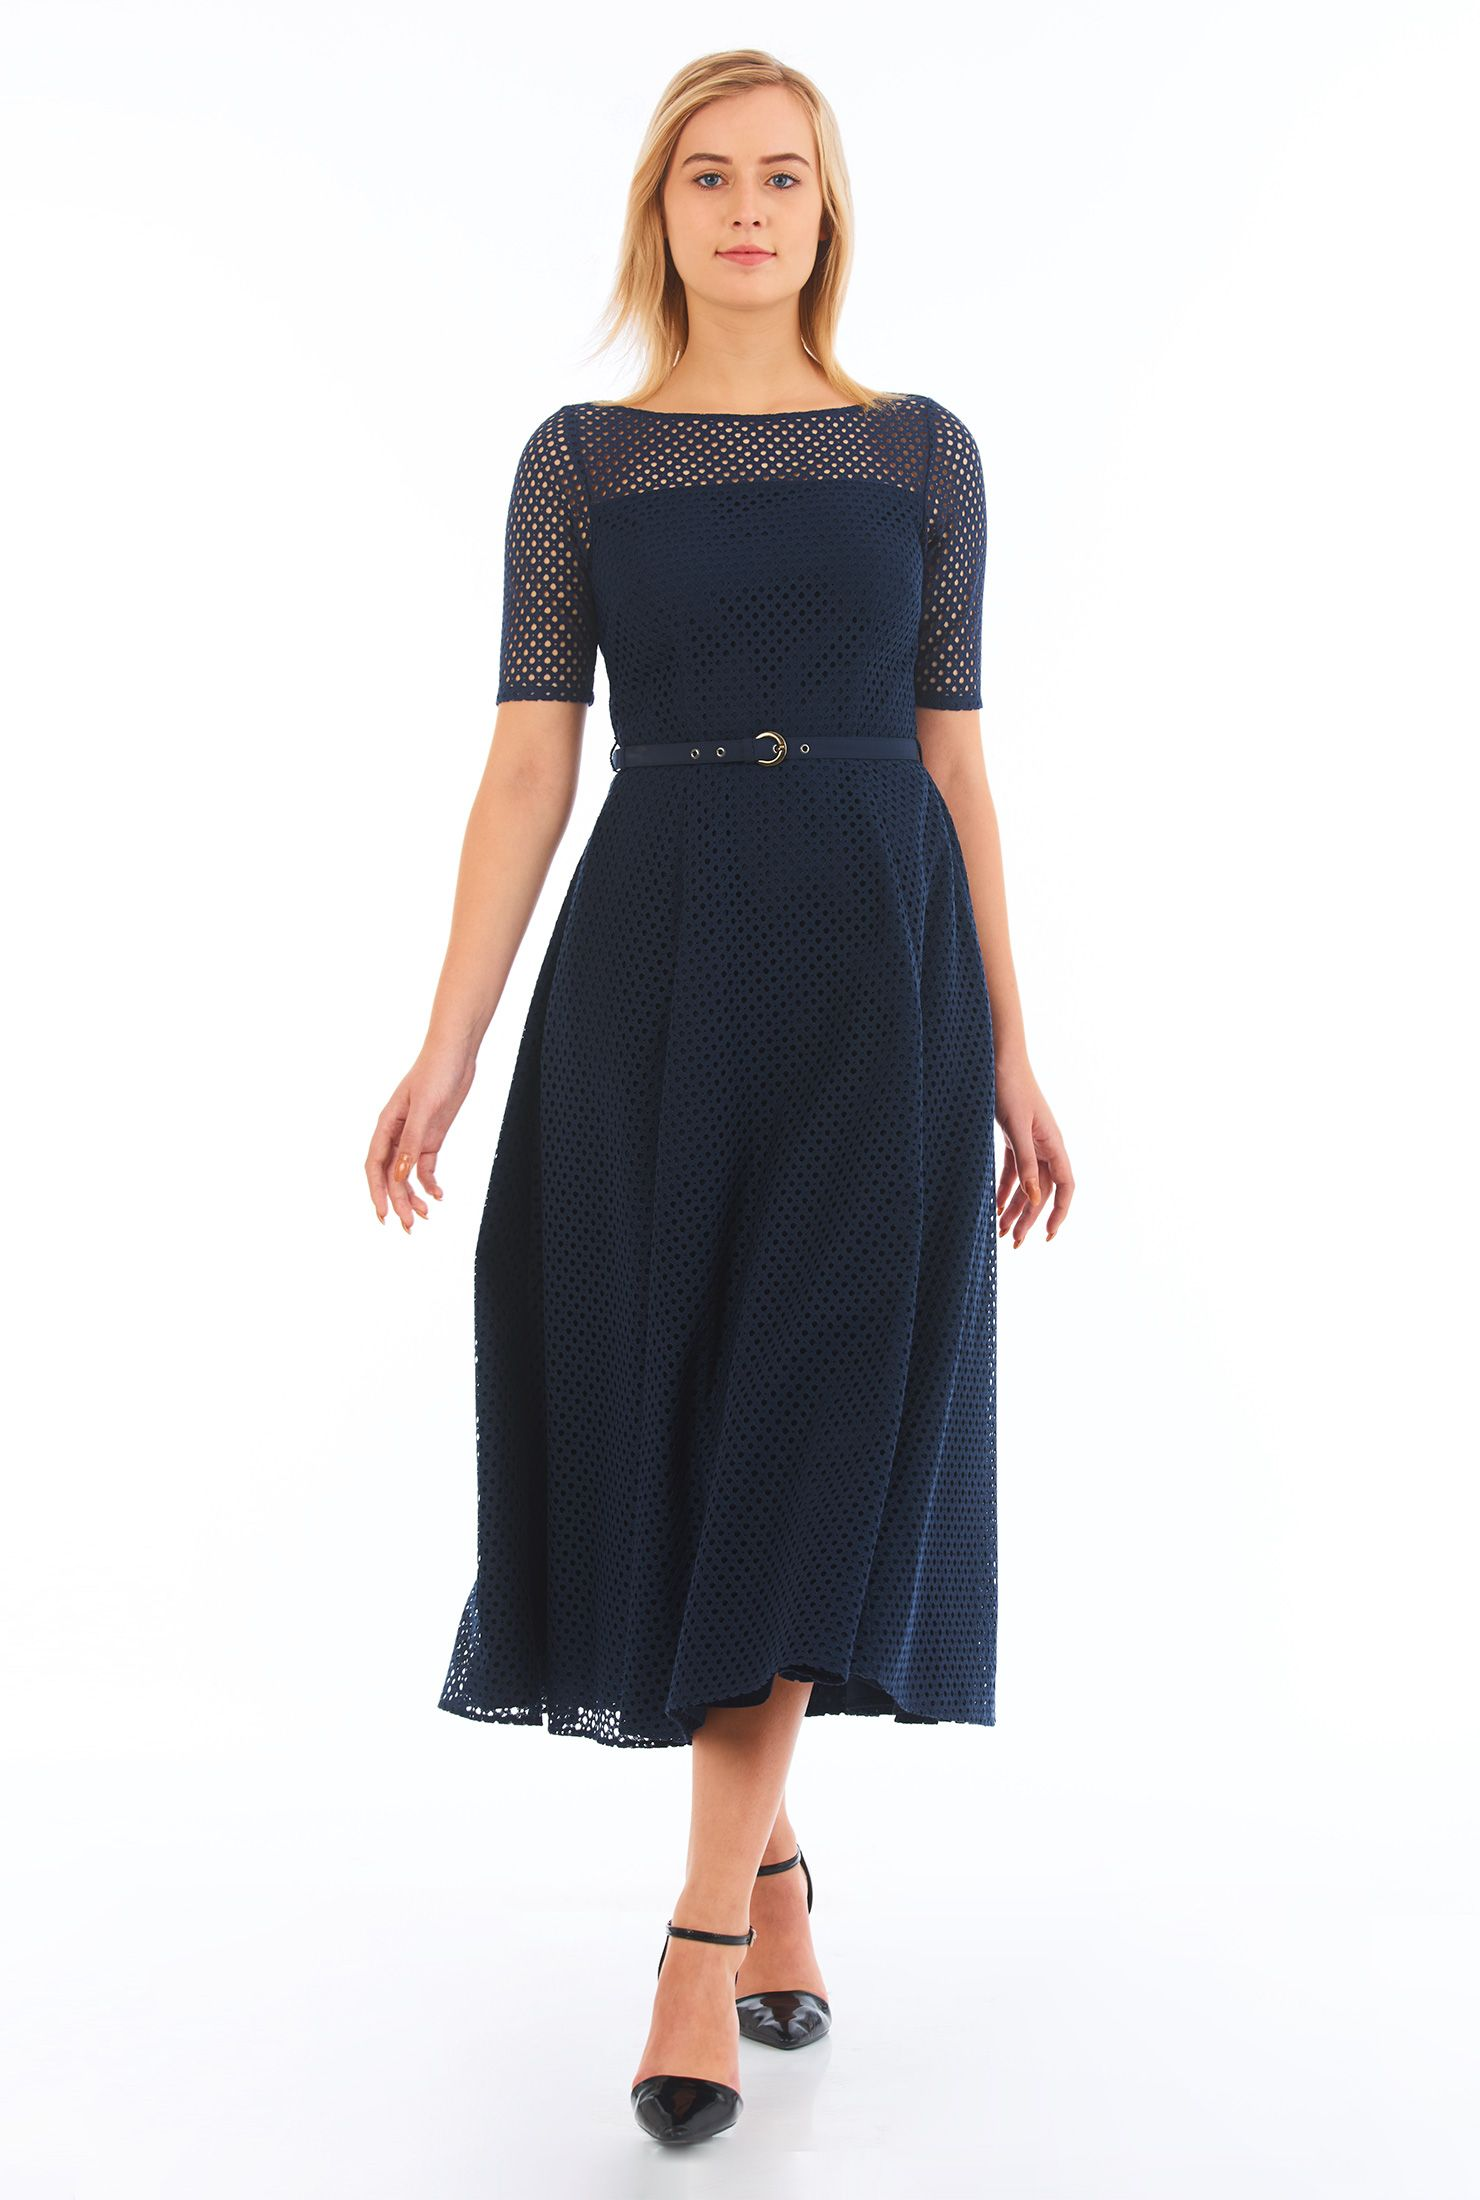 396598790d27 Our diamond eyelet fit-and-flare dress features a sheer front yoke and  sleeves while a full skirt flares from the figure-defining seamed and  belted waist ...